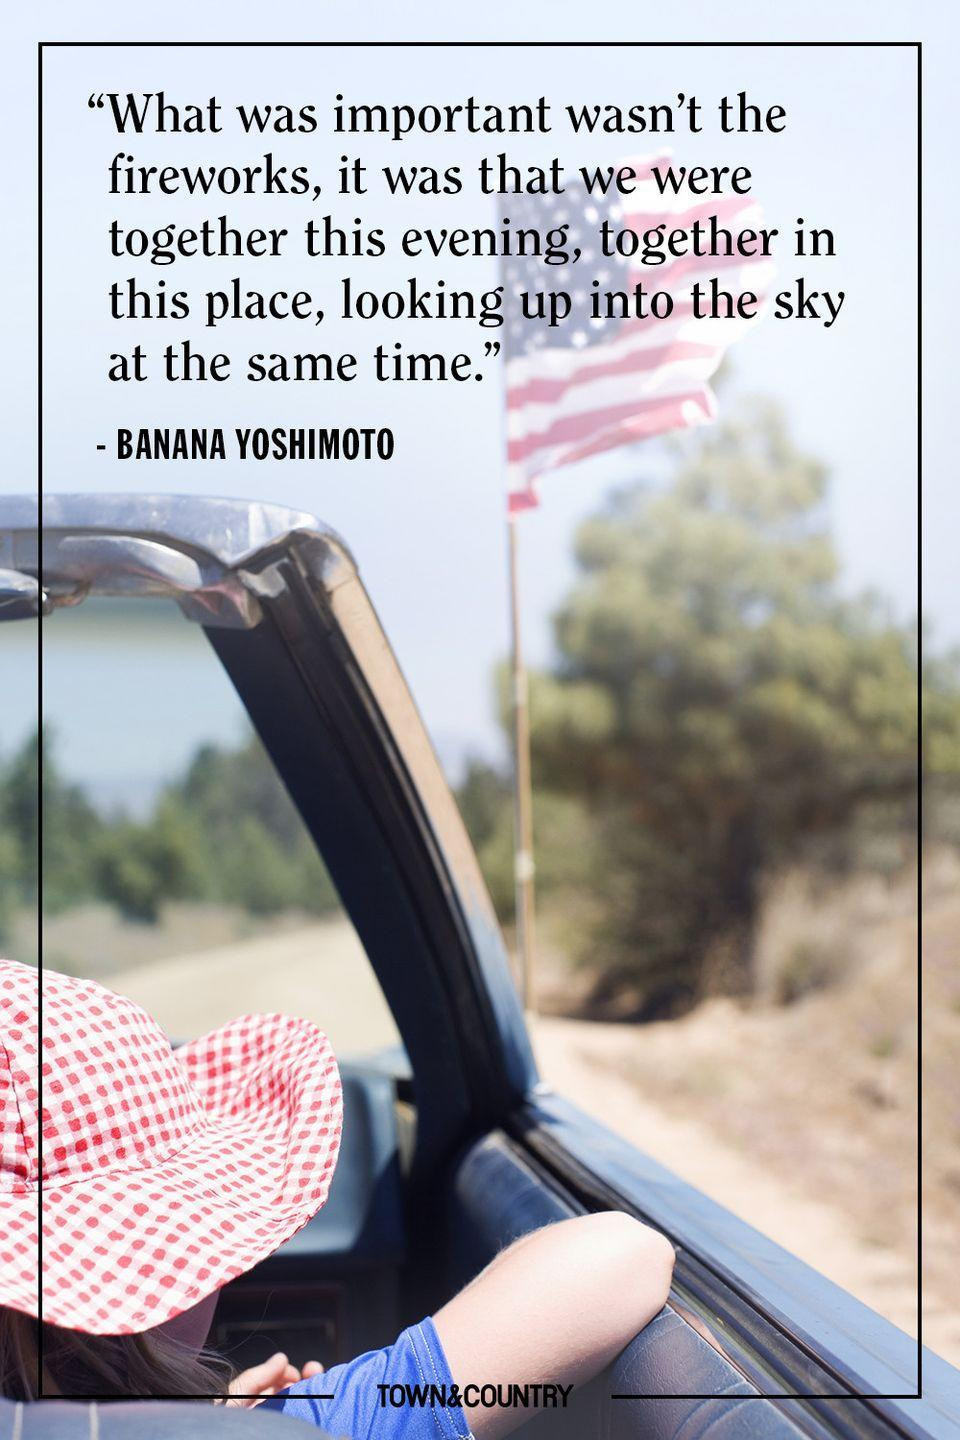 """<p>""""What was important wasn't the fireworks, it was that we were together this evening, together in this place, looking up into the sky at the same time.""""</p><p><em>— Banana Yoshimoto</em></p>"""